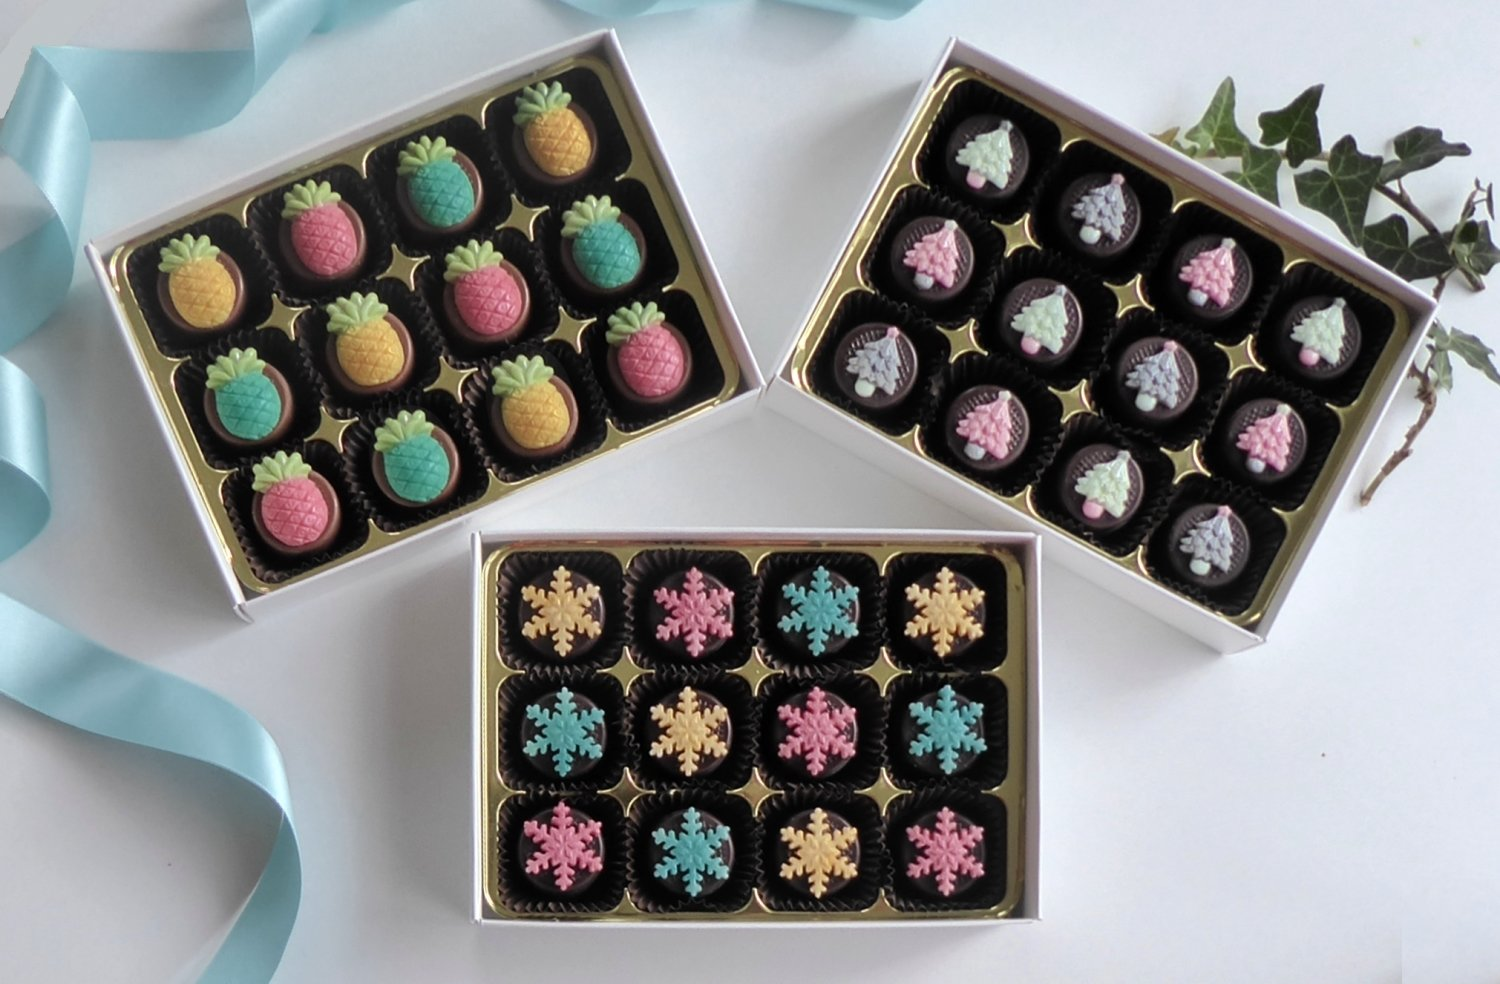 Sparkly Collection - 3 box set of Christmas chocolates